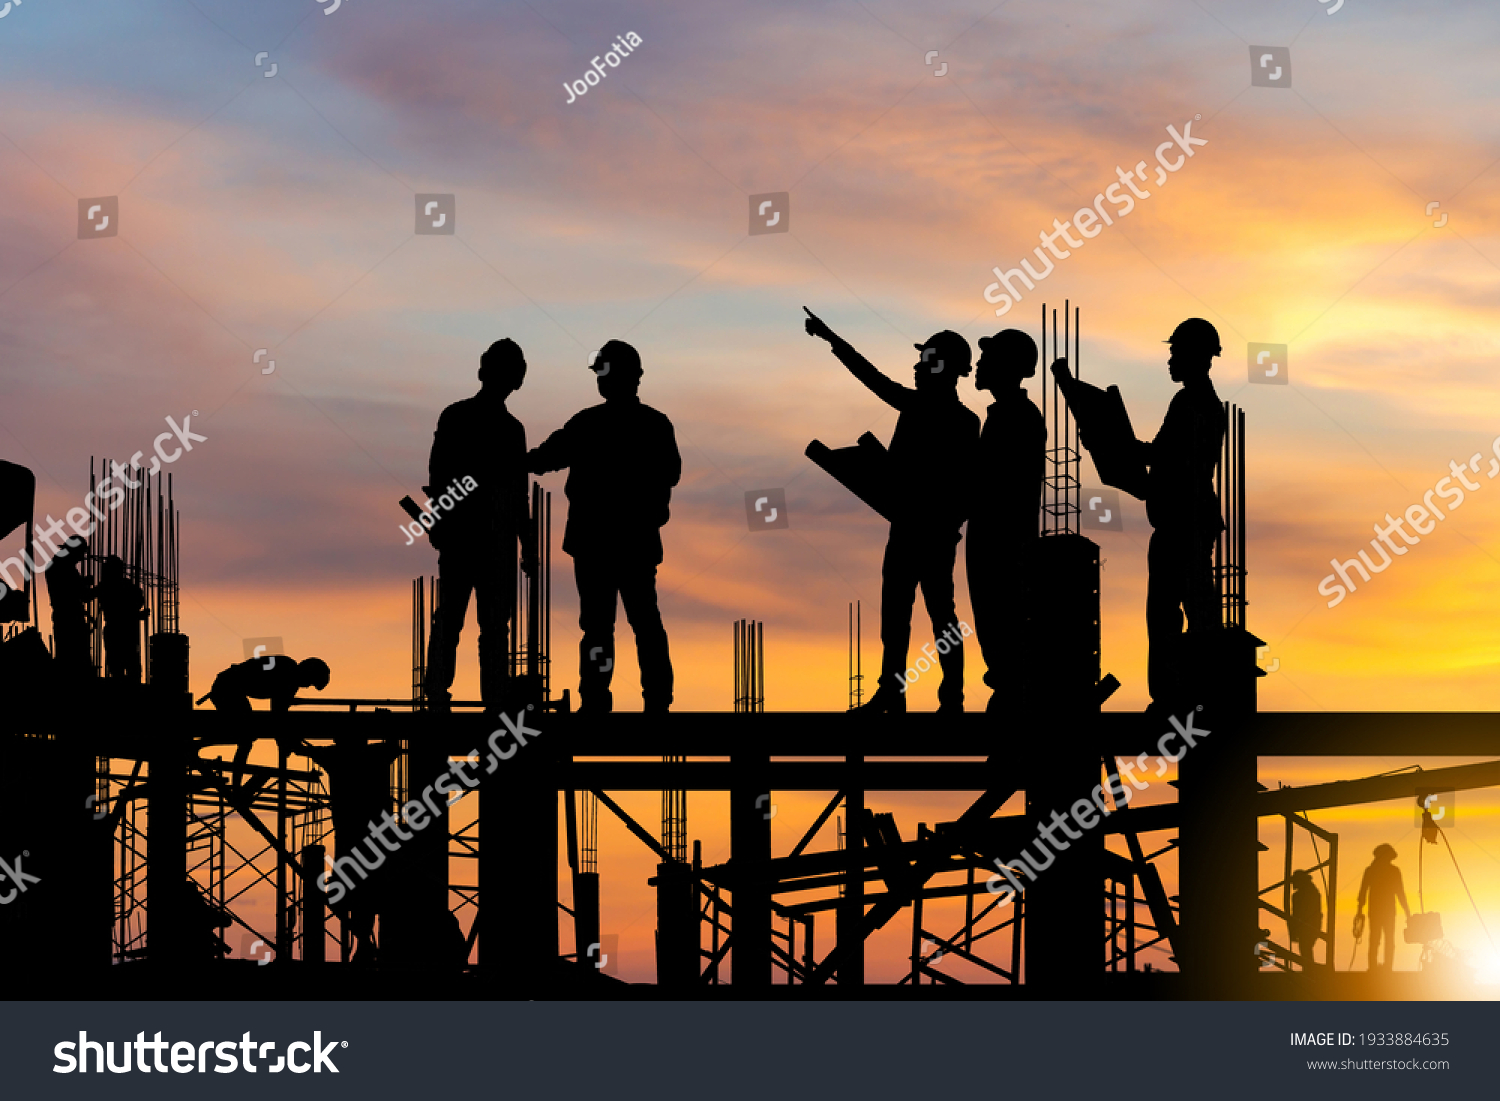 Silhouette of Engineer and worker on building site, construction site at sunset in evening time. #1933884635